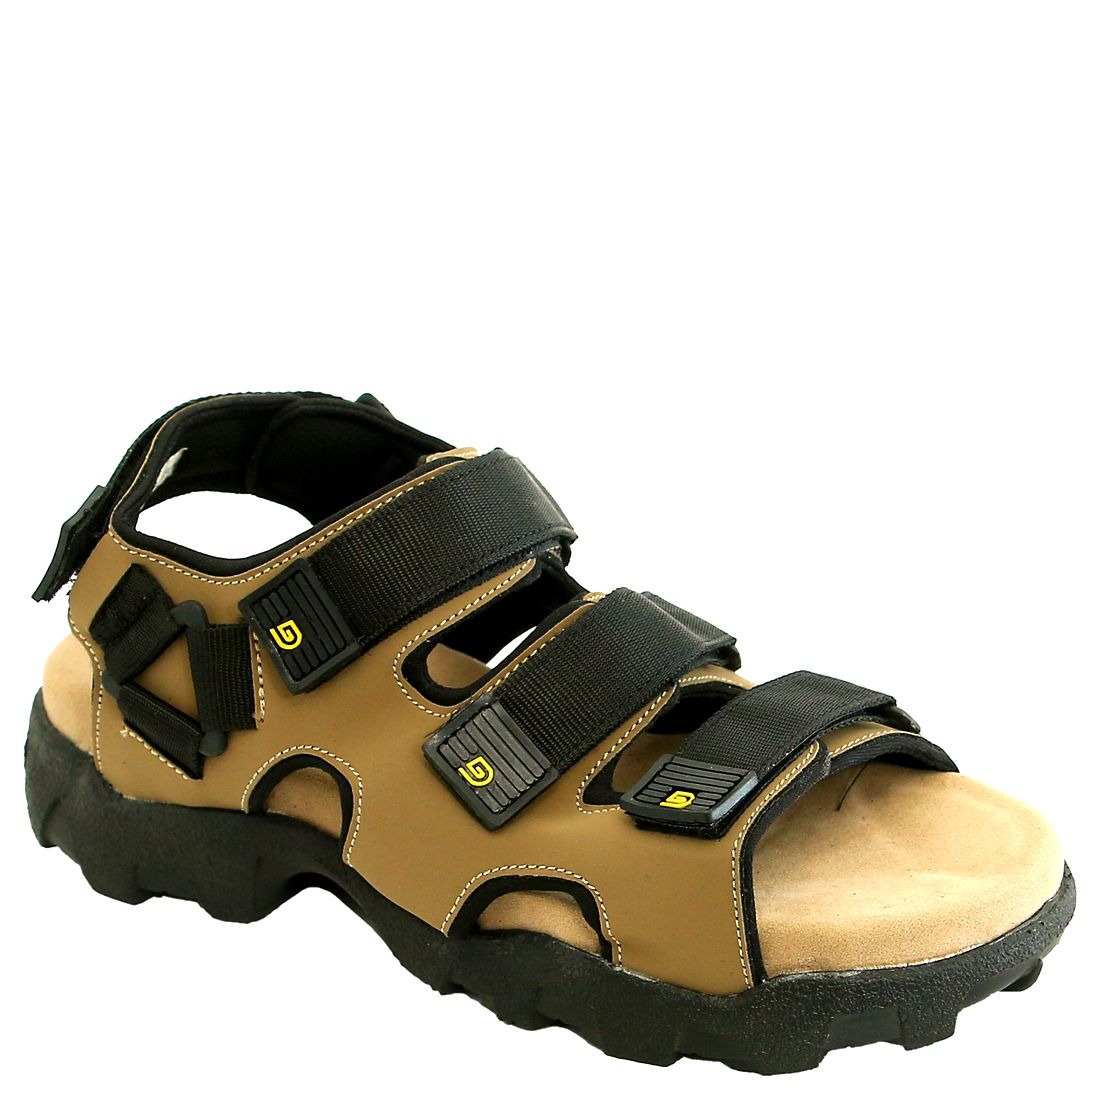 DSIGNES CHIKOO CASUAL SANDALS FOR MEN-20107